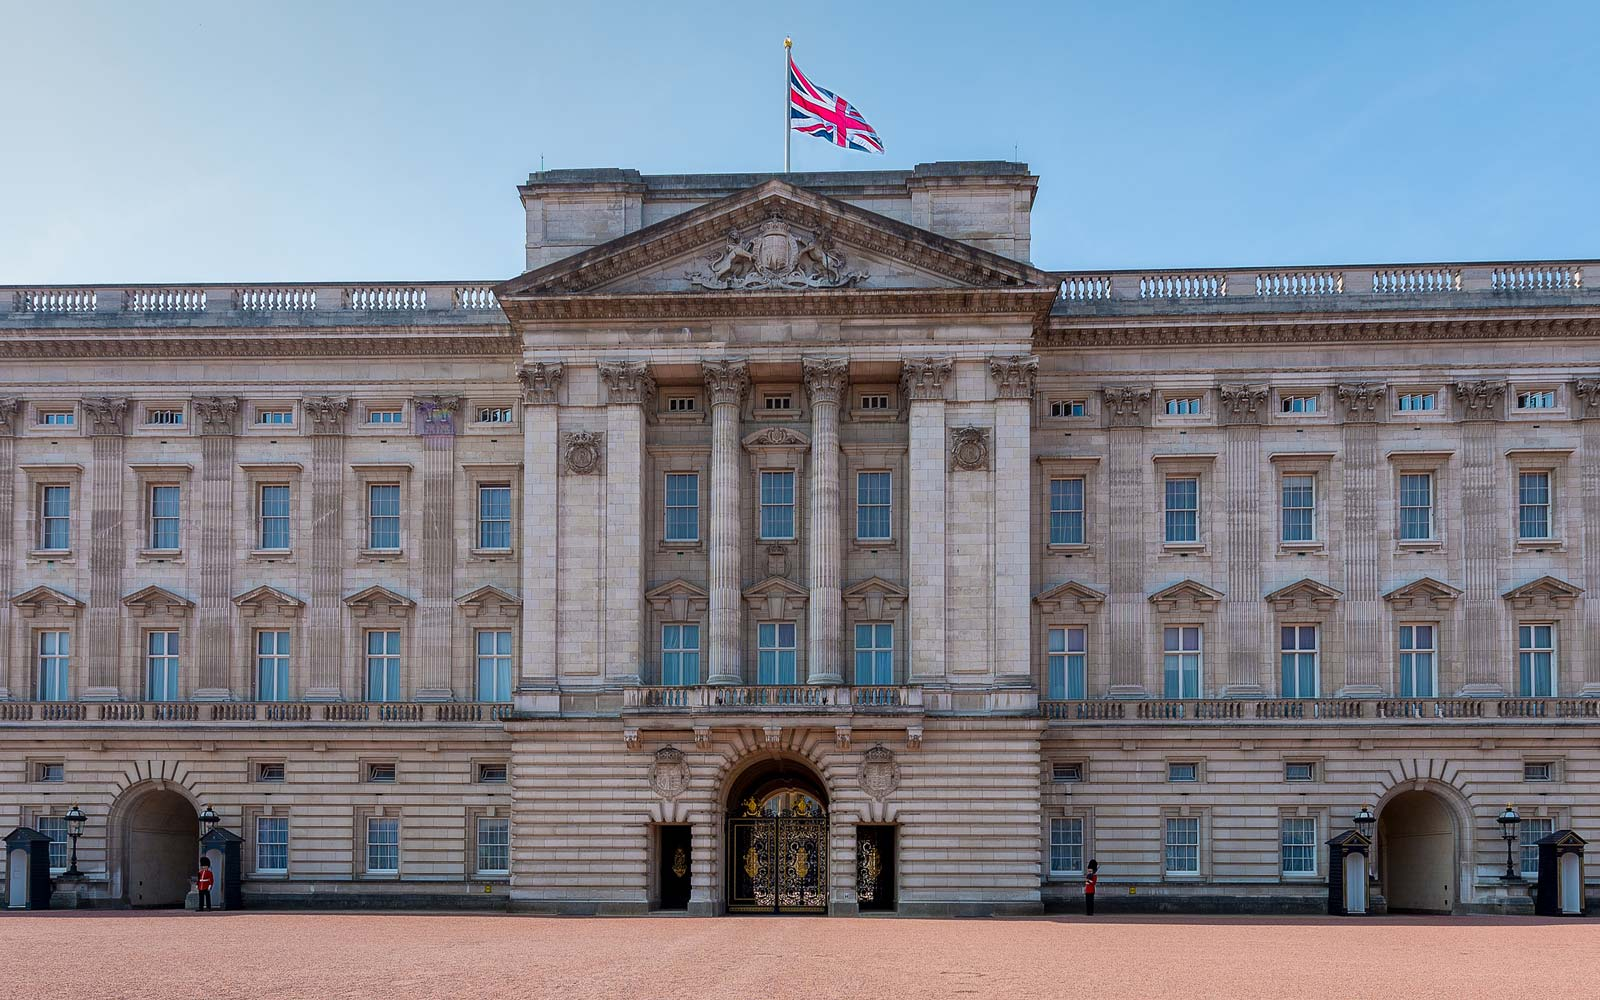 The famous Buckingham Palace in London England